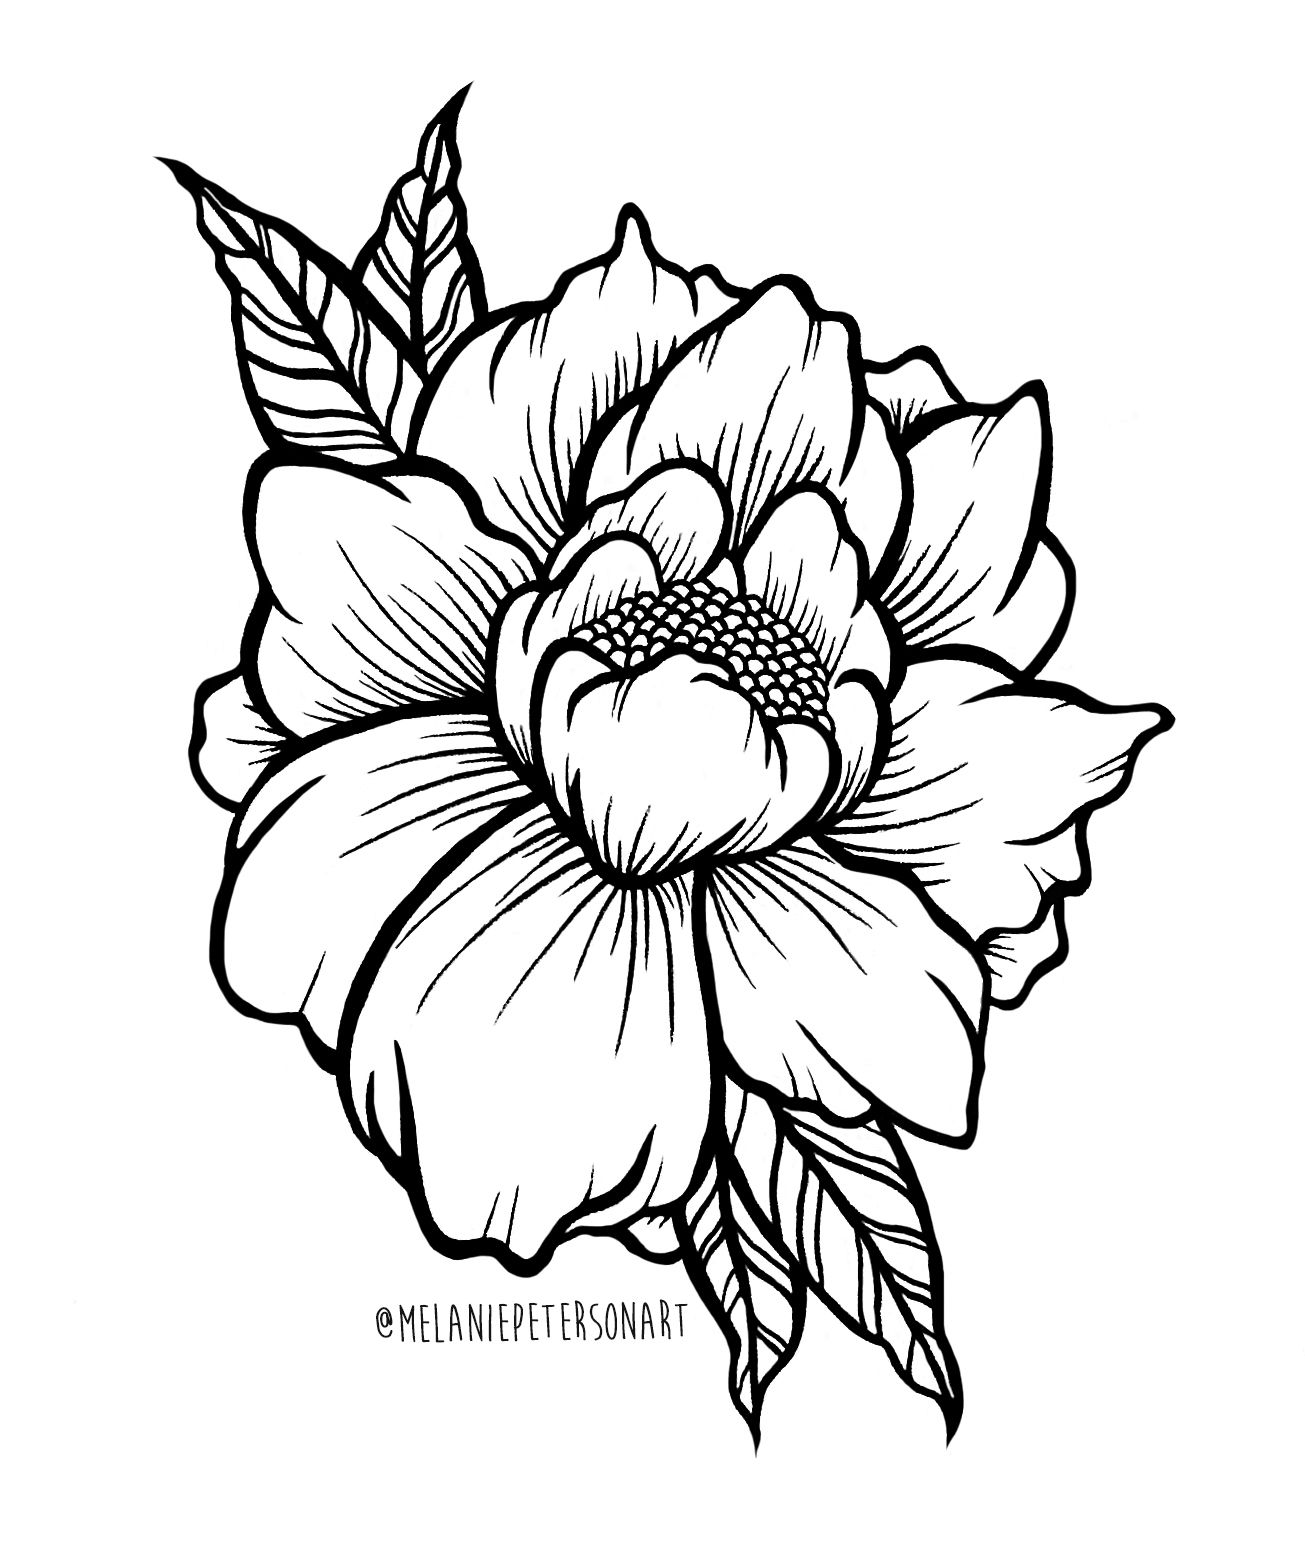 Peony Illustration Done Using Copic And Micron Pens Flower Art Nature Drawing Illustration Blackw Peony Illustration Micron Pen Art Flower Line Drawings